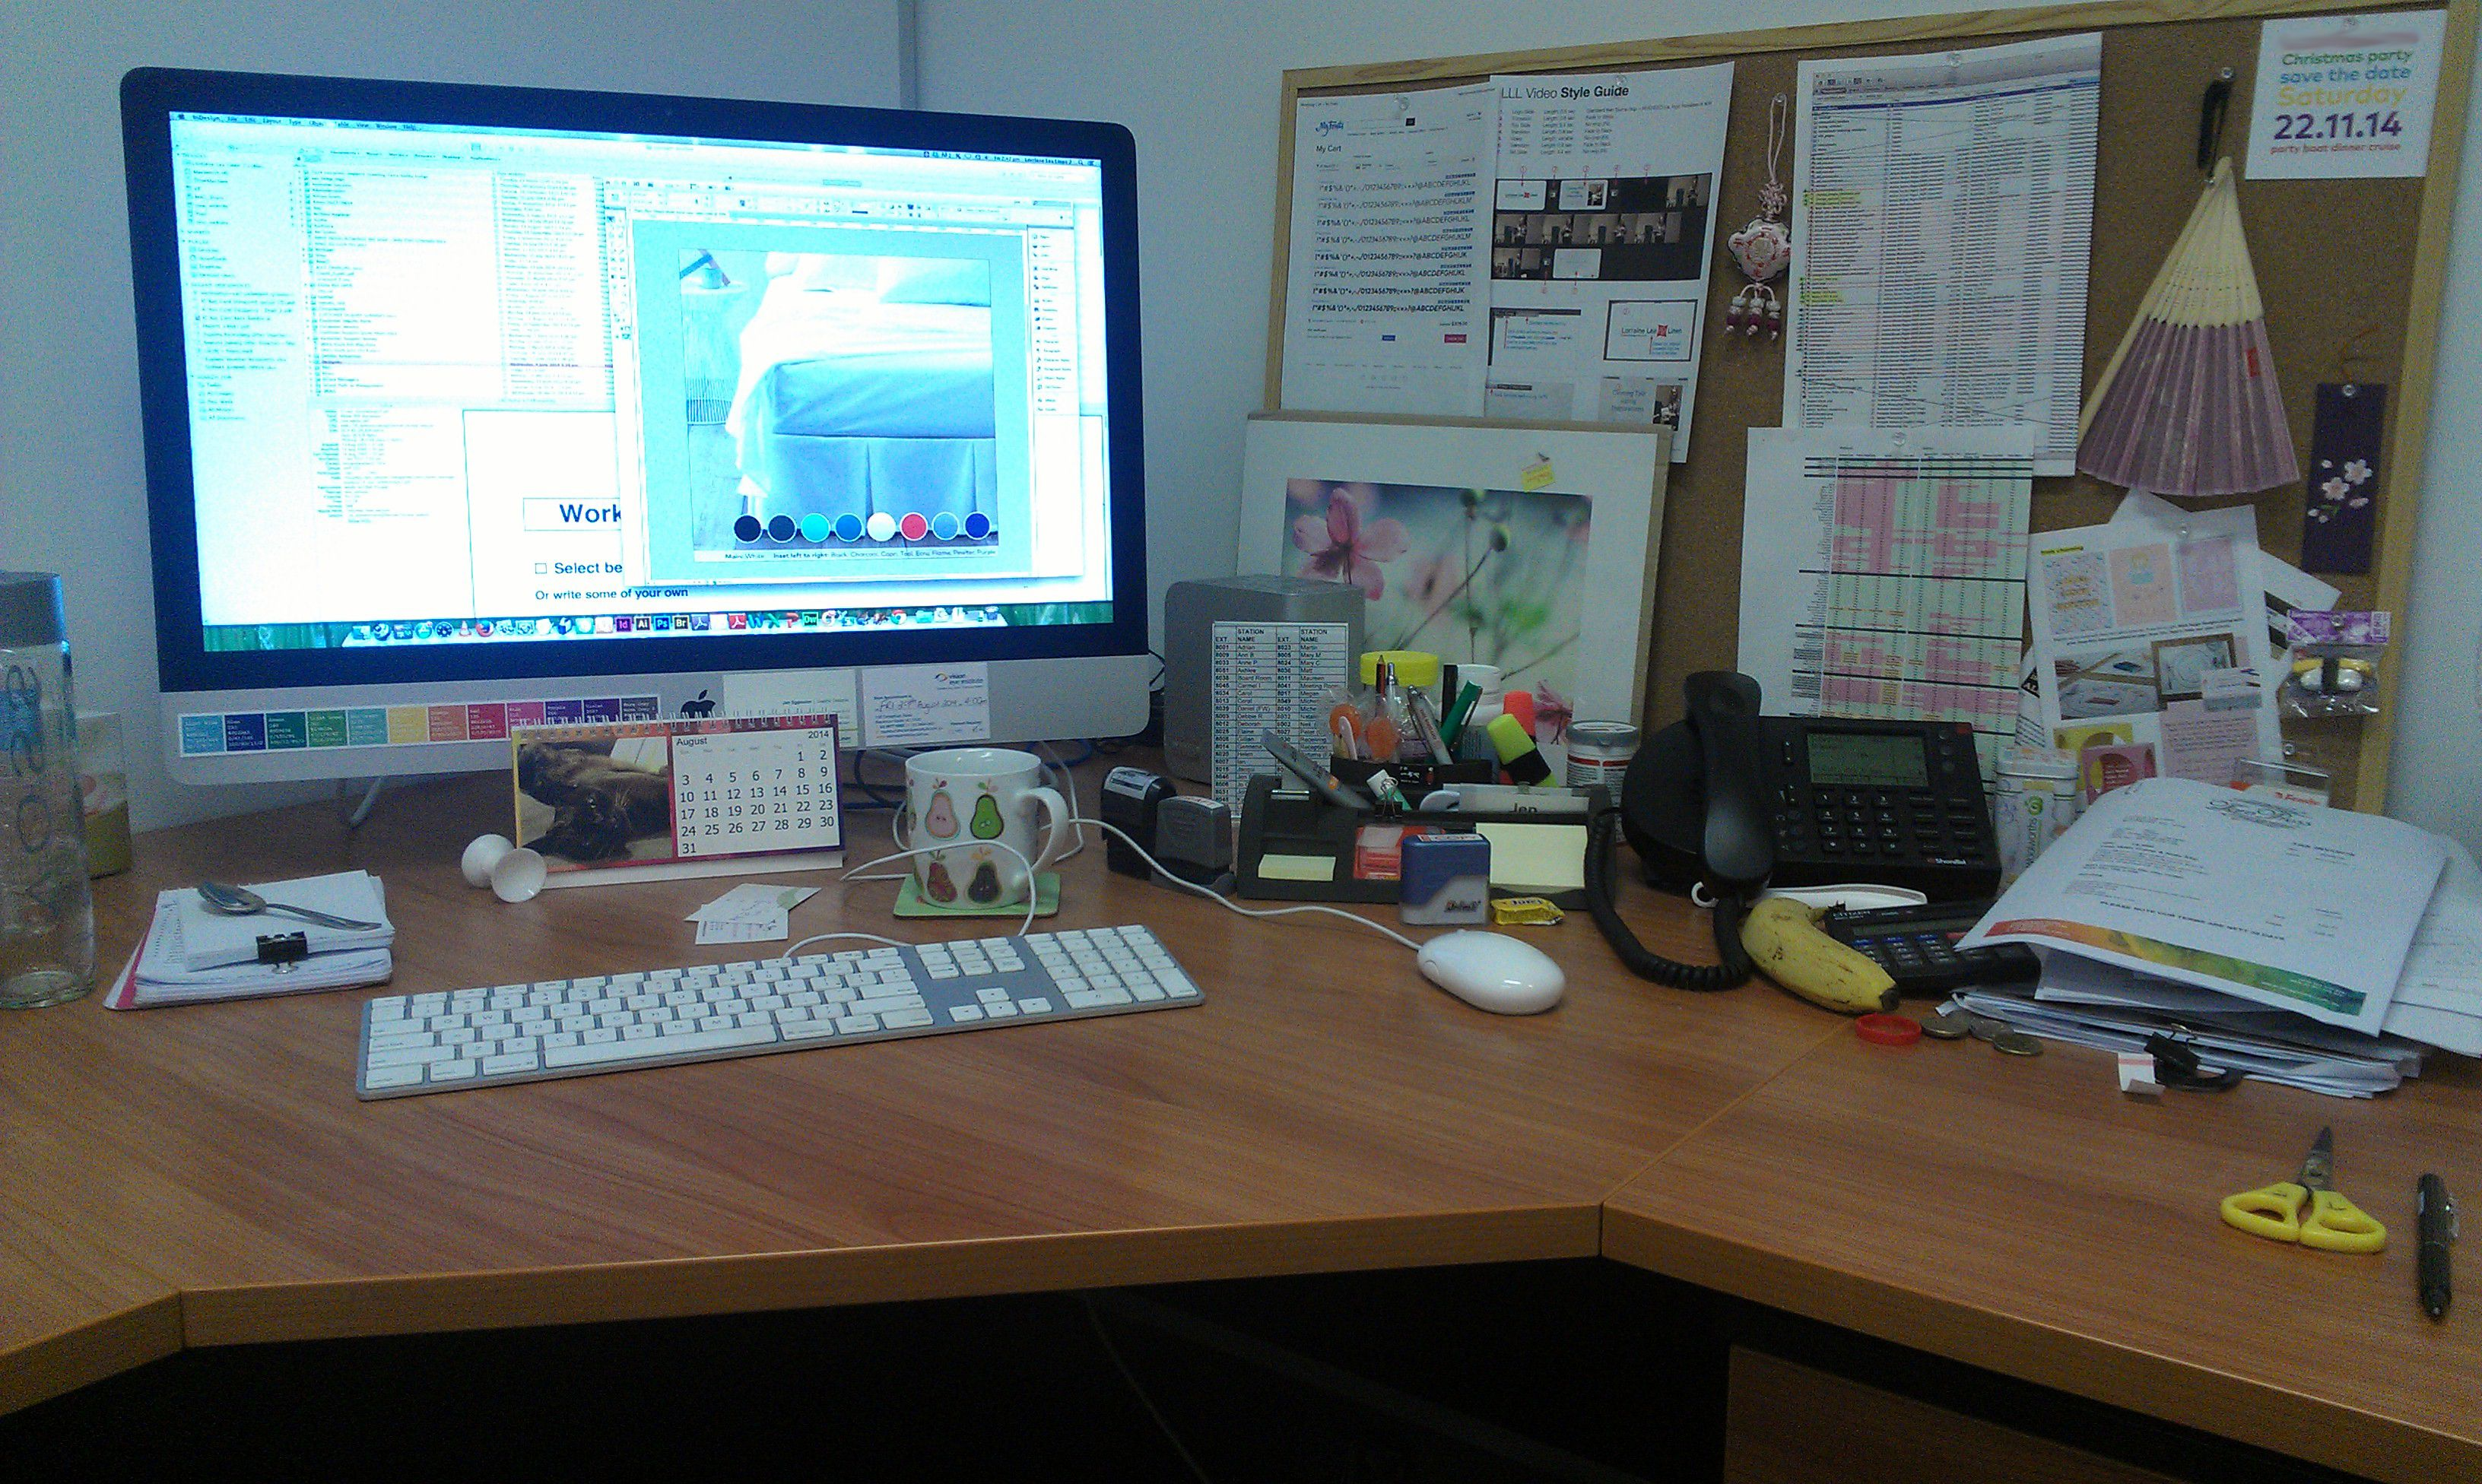 officeworks office desks. This Is My Office Desk - It Needs Some Help Officeworks! Officeworks Desks E